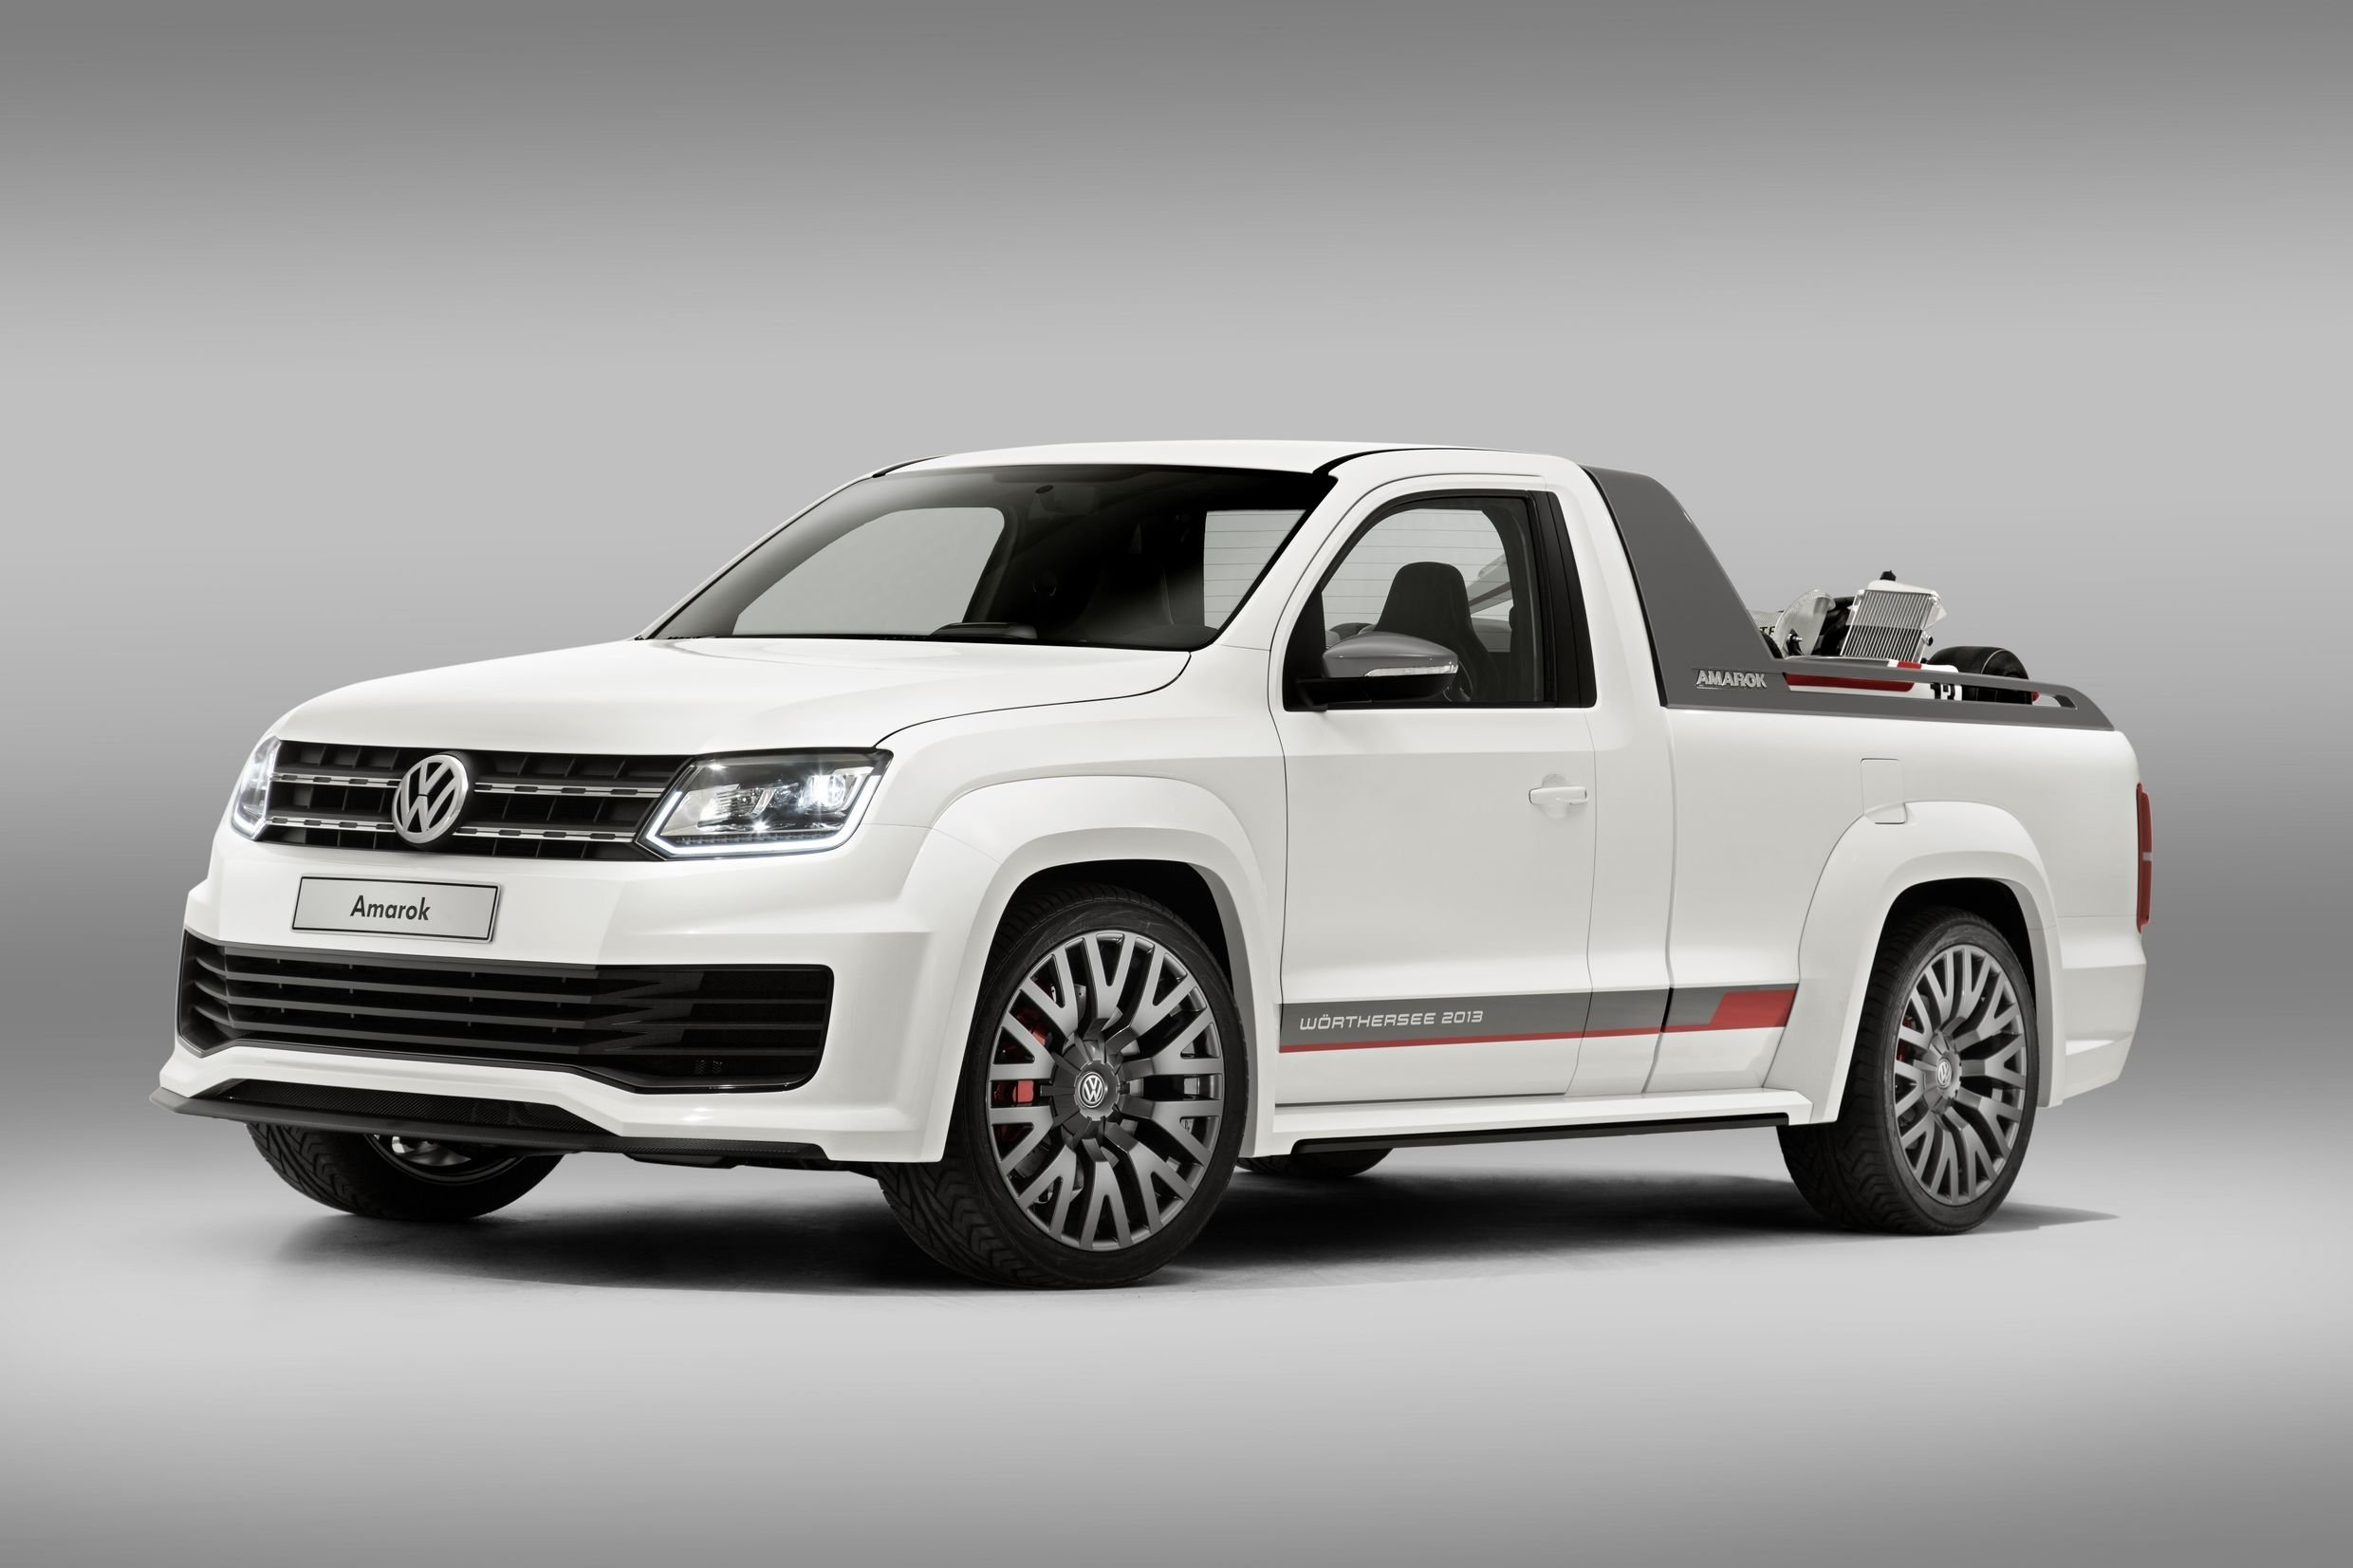 volkswagen amarok power pickup unveiled photos 1 of 6. Black Bedroom Furniture Sets. Home Design Ideas